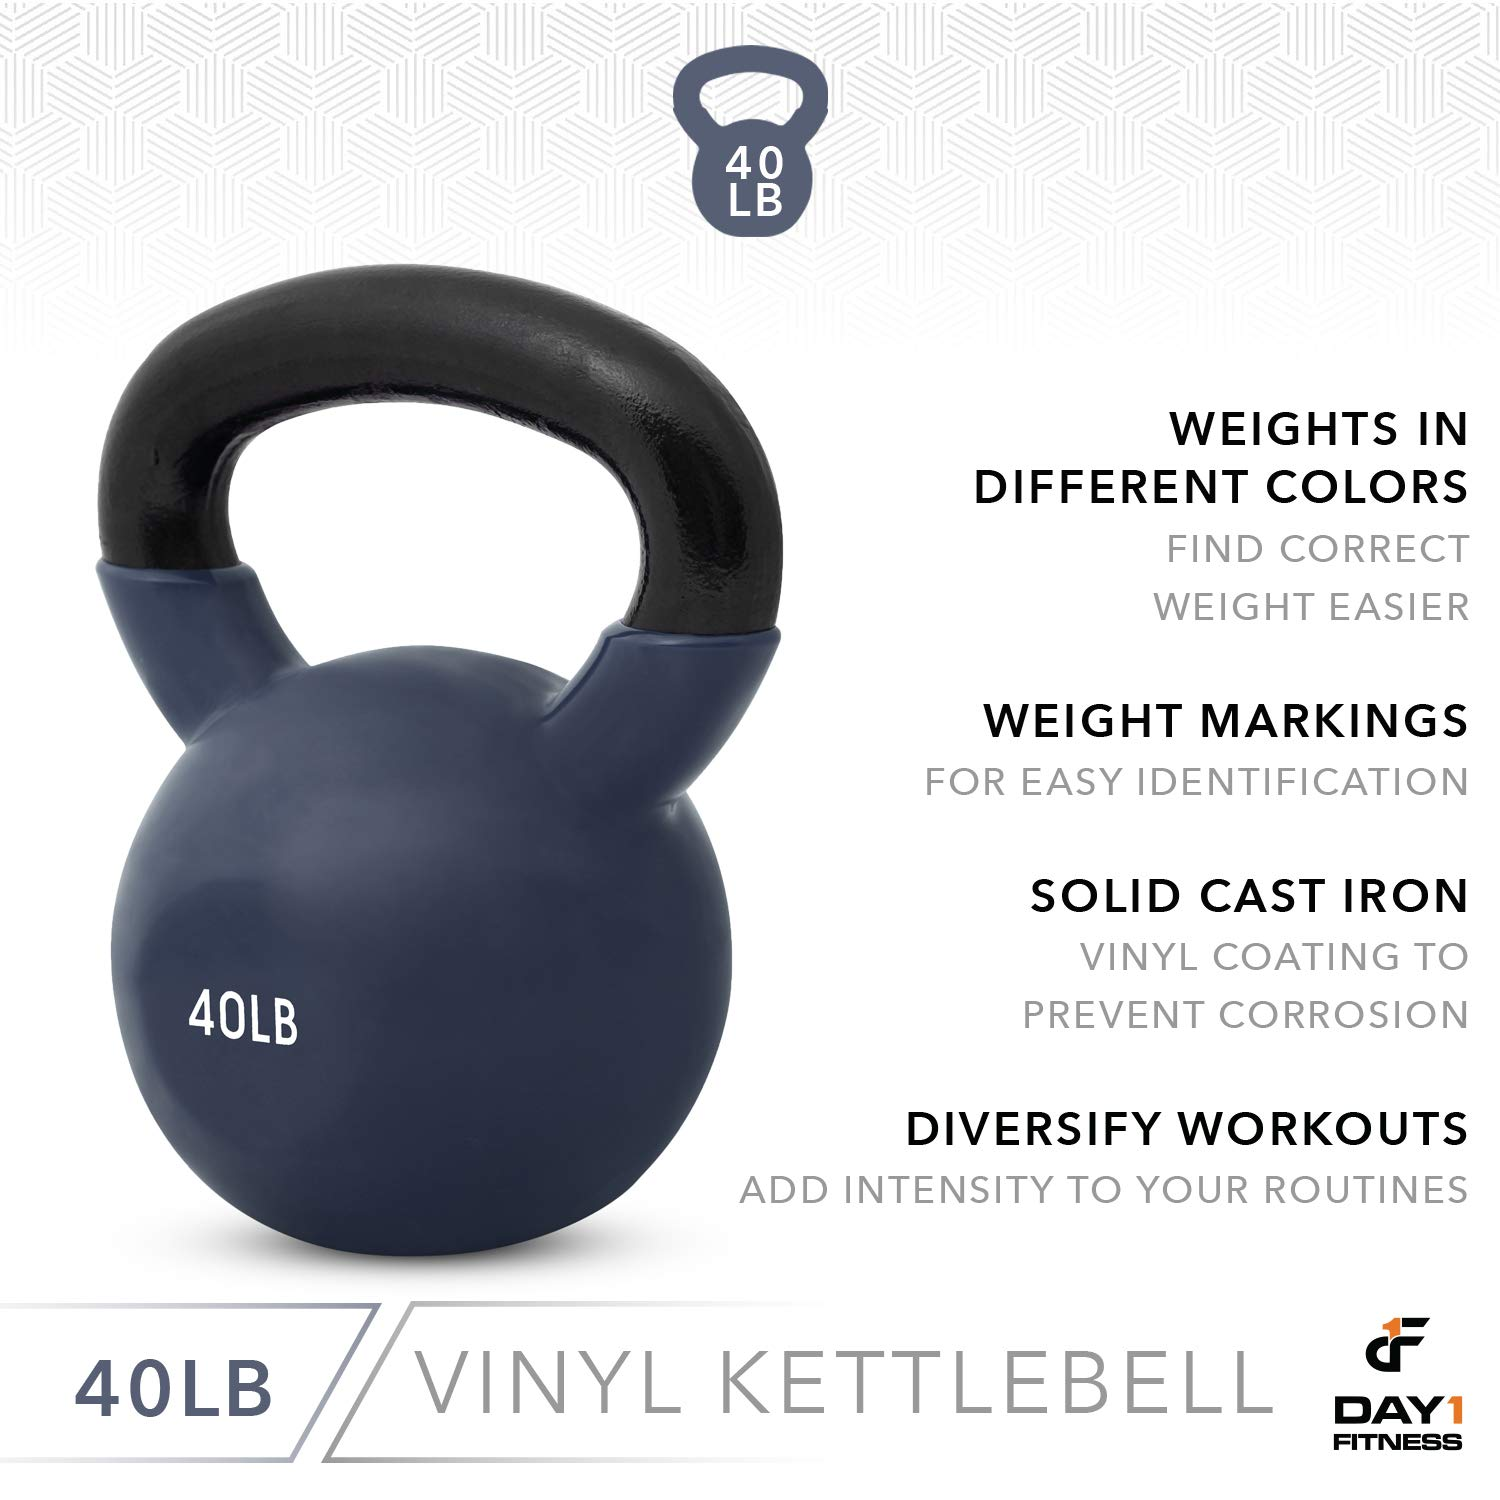 Day 1 Fitness Kettlebell Weights Vinyl Coated Iron 40 Pounds - Coated for Floor and Equipment Protection, Noise Reduction - Free Weights for Ballistic, Core, Weight Training by Day 1 Fitness (Image #5)